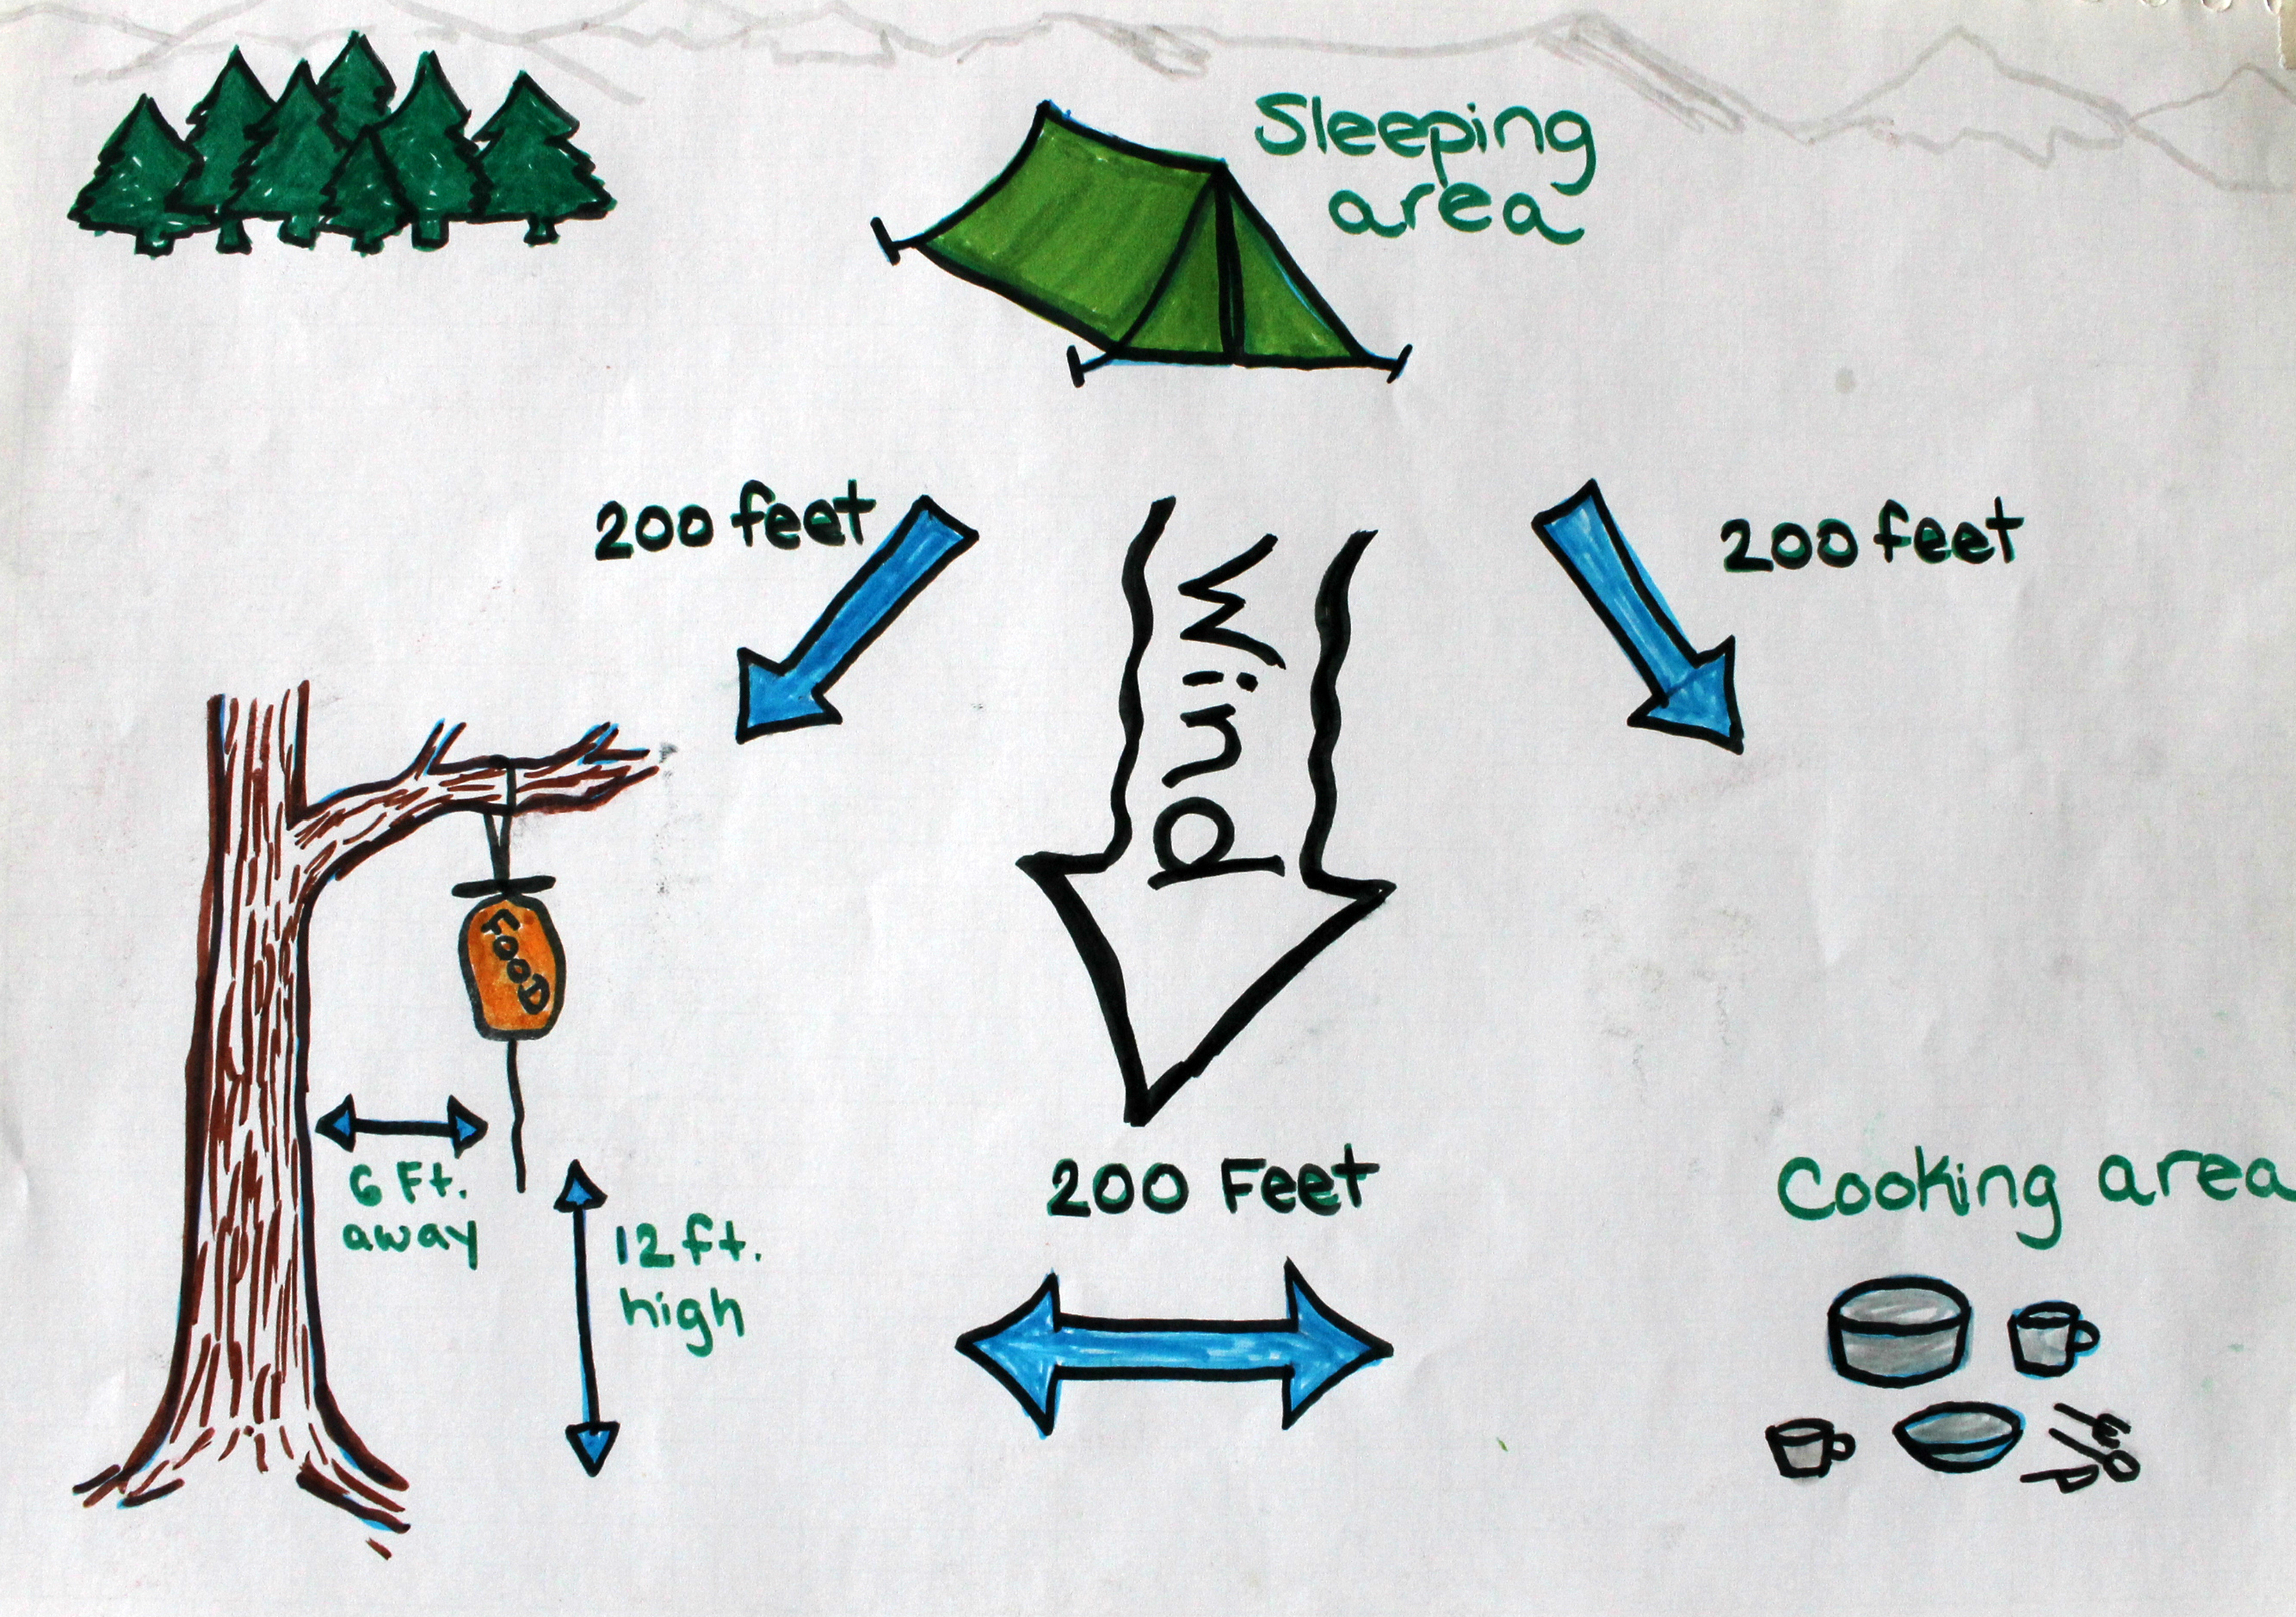 5 Ways To Hang A Bear Bag Mom Goes Camping Tying Tie Diagram Proofing Campsite